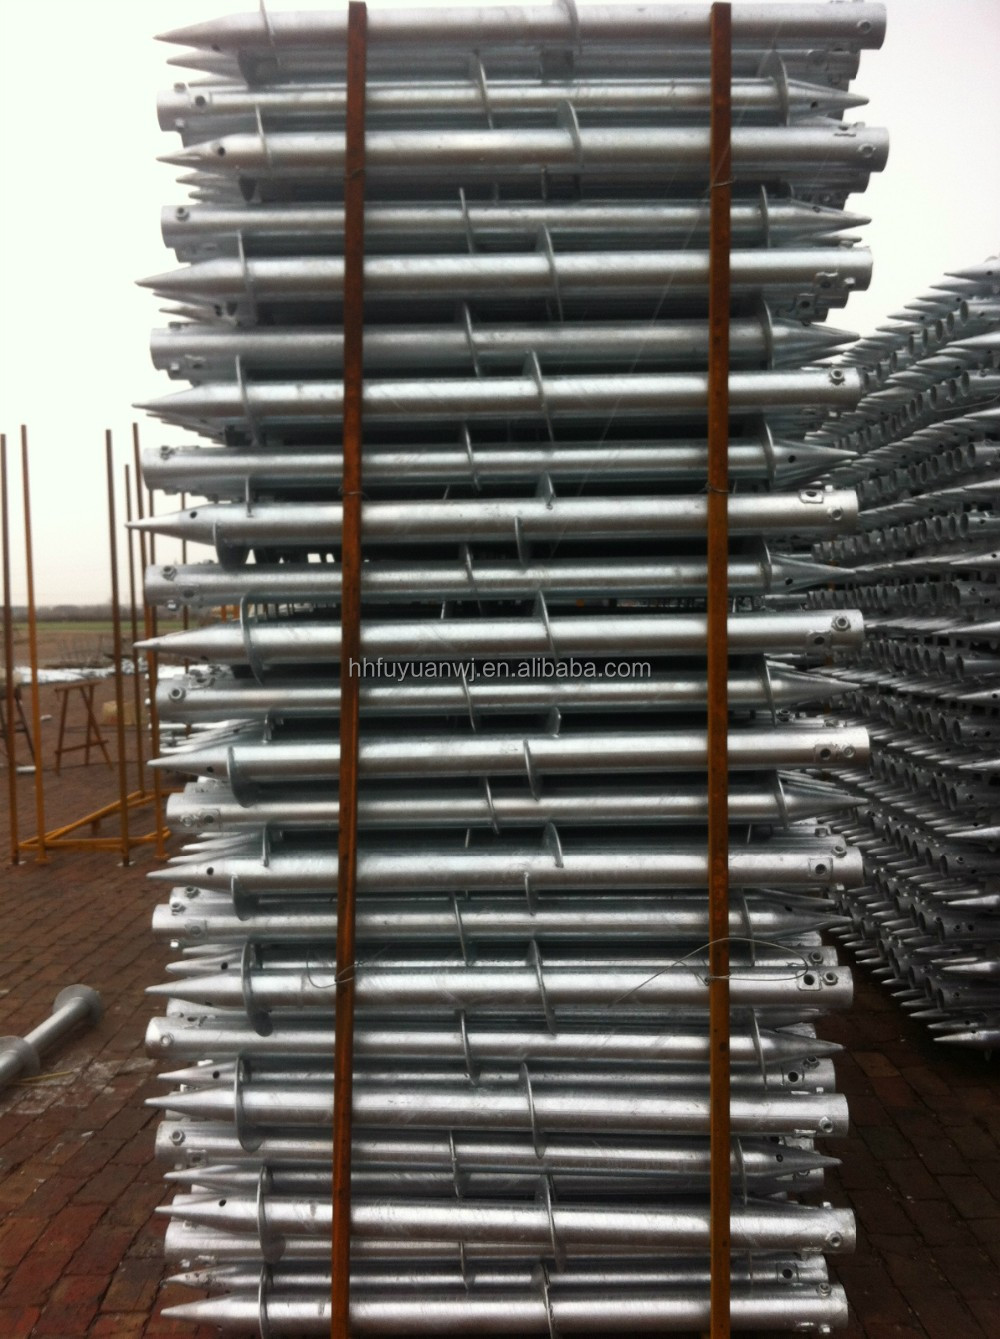 Factory Ground Screw Pile For Solar Ground Mounting System